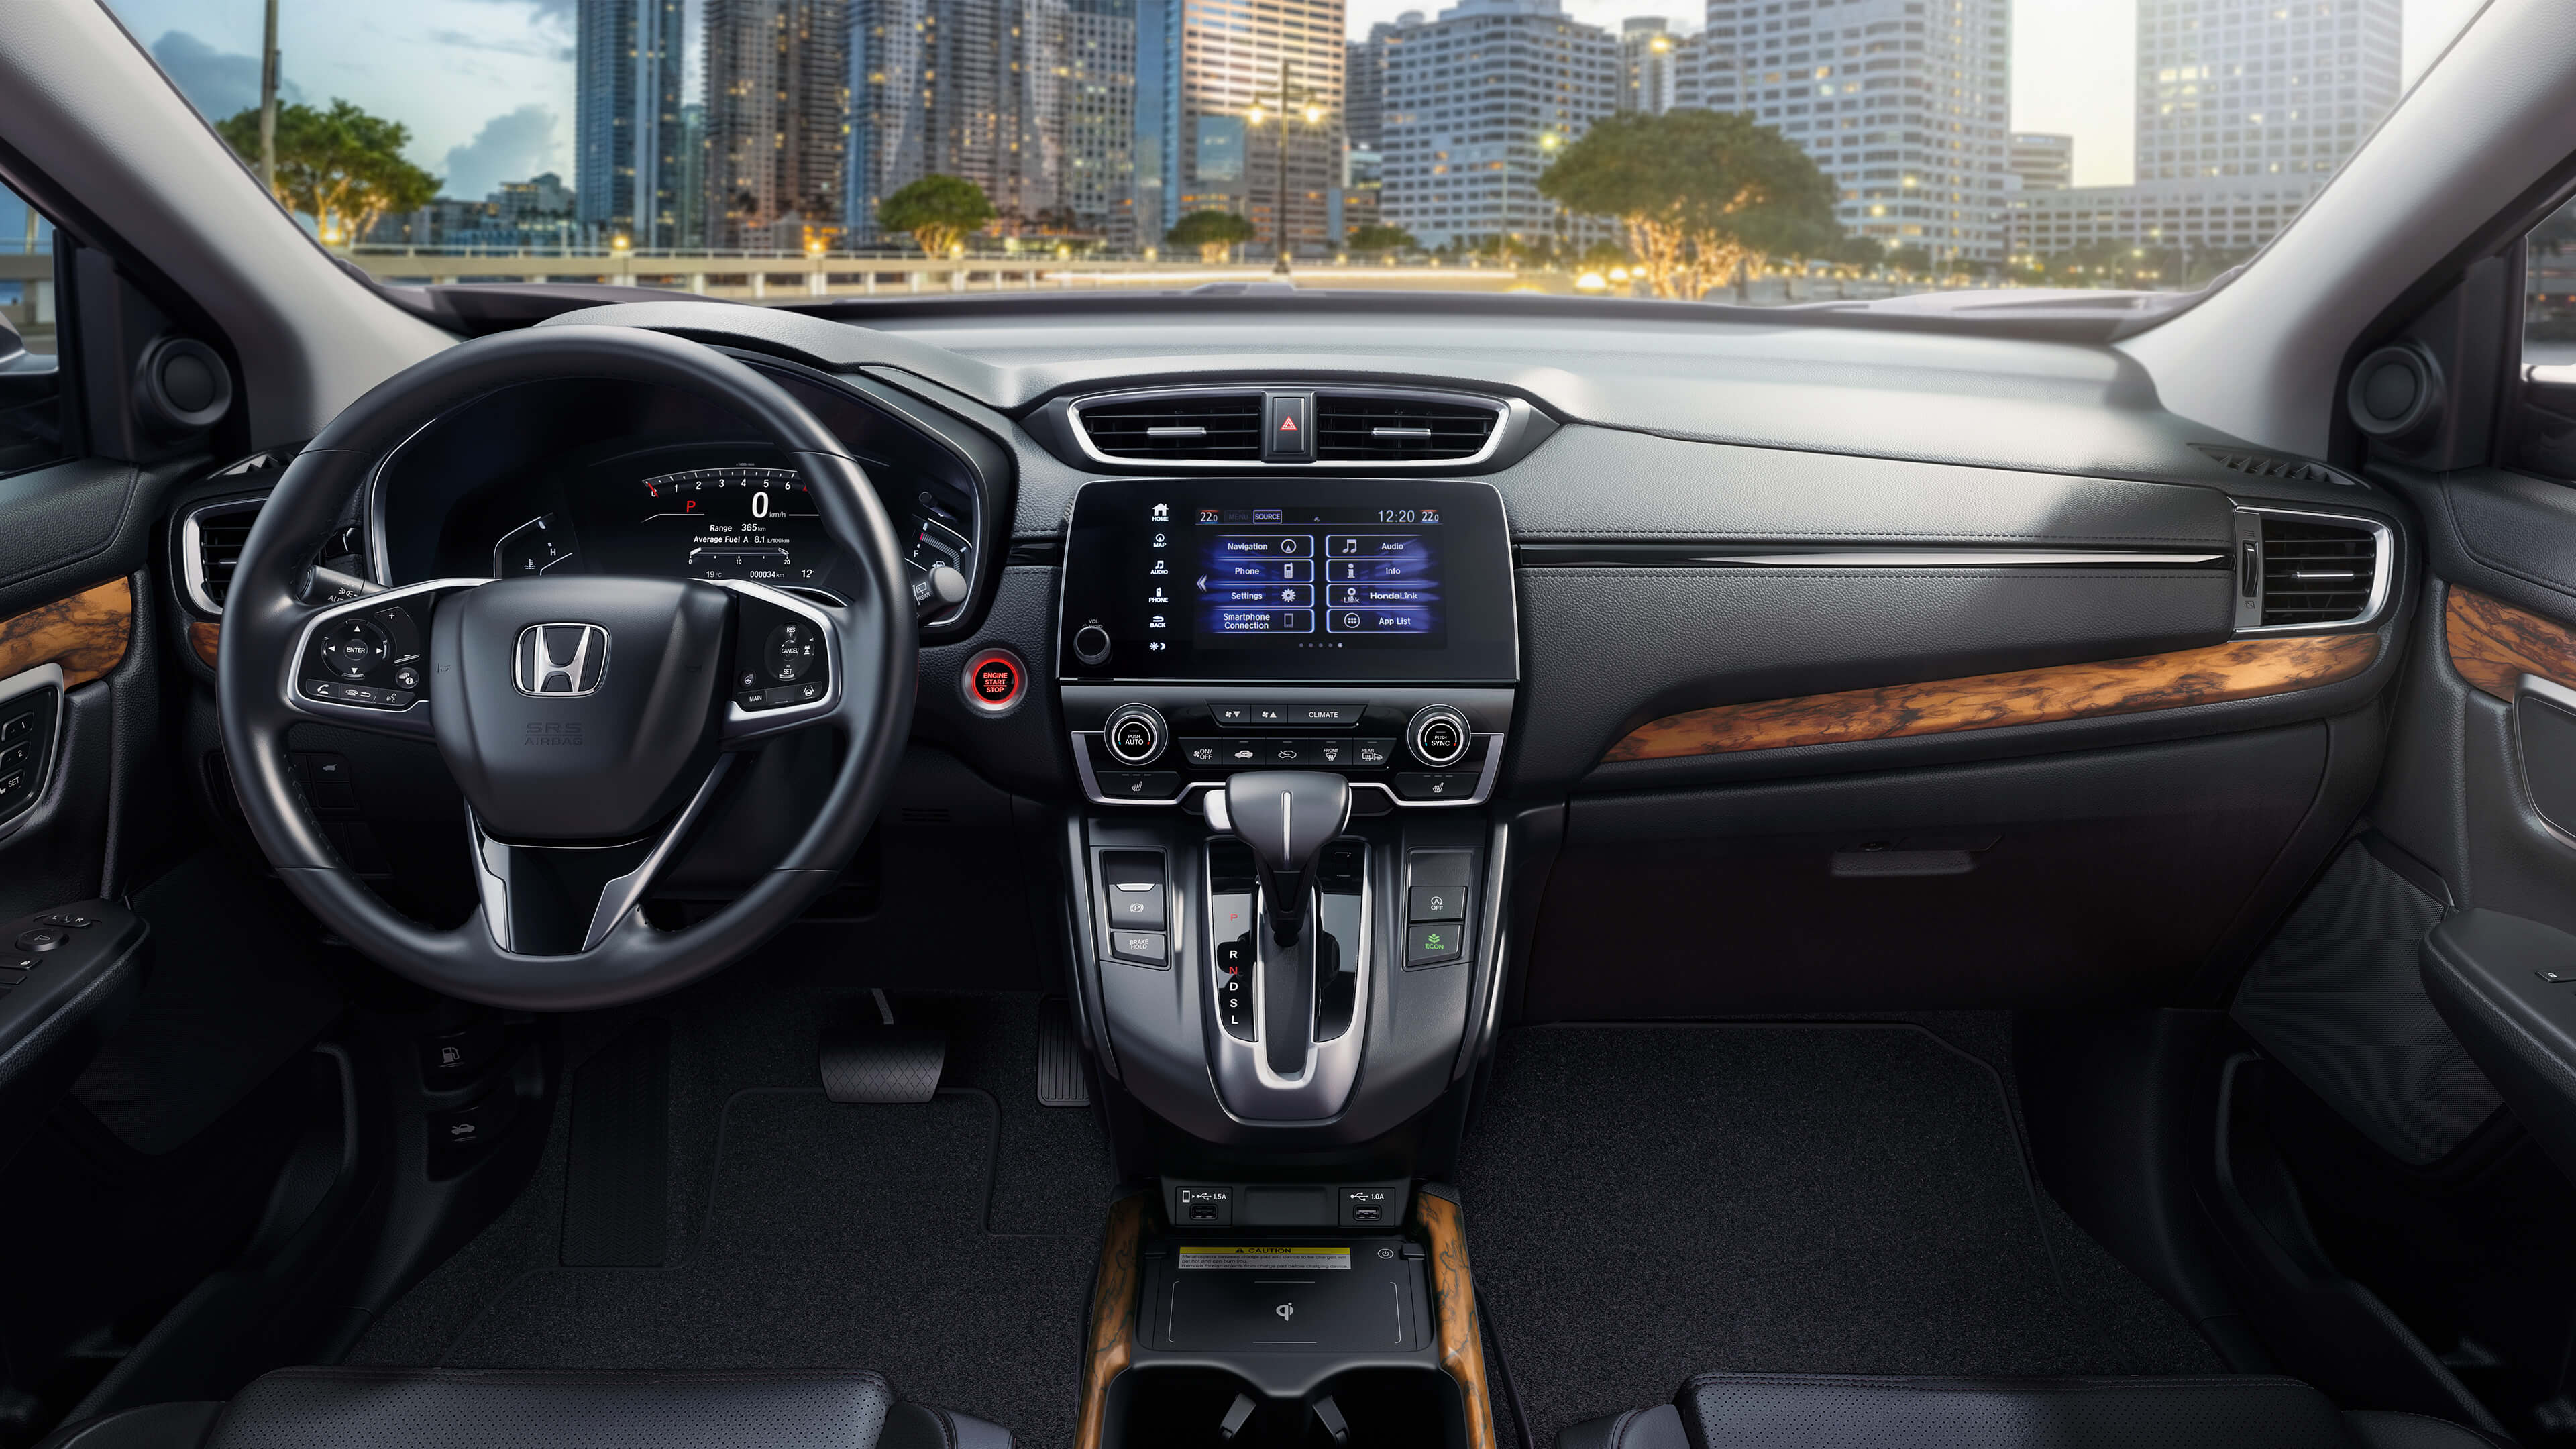 2020 Honda CR-V Interior - Wood Wheaton Honda